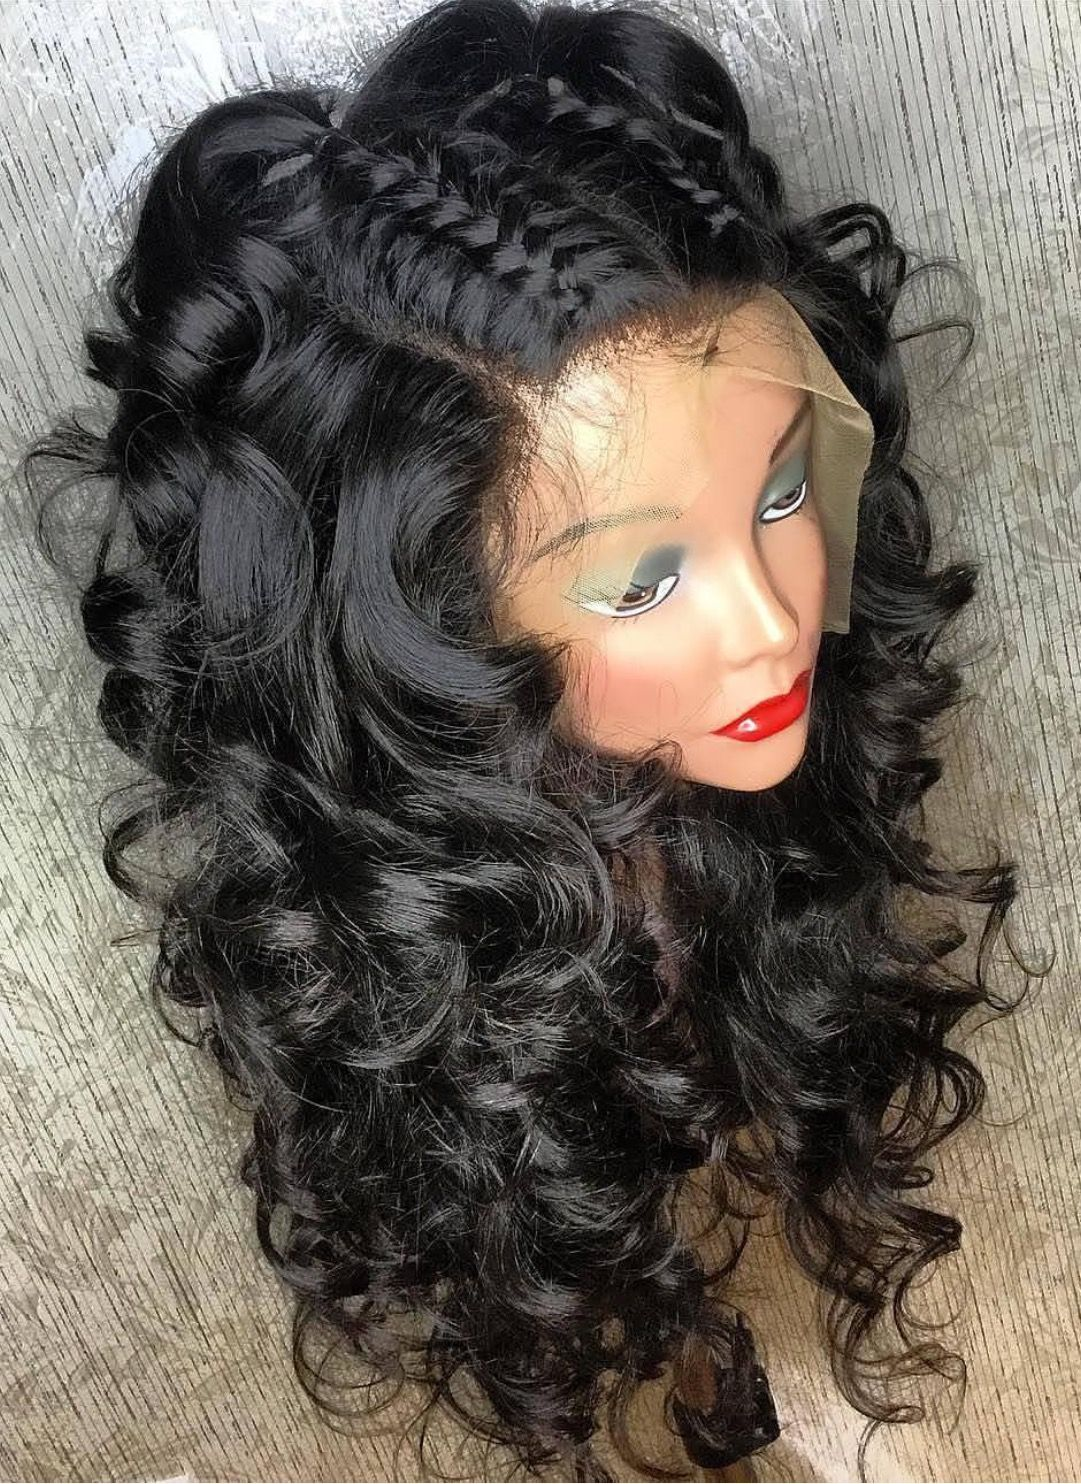 9a Braid Down Loose Wave Lace Front Wig 20 Inch Full Lace Wig Human Hair Wig Hairstyles Curly Hair Styles Naturally